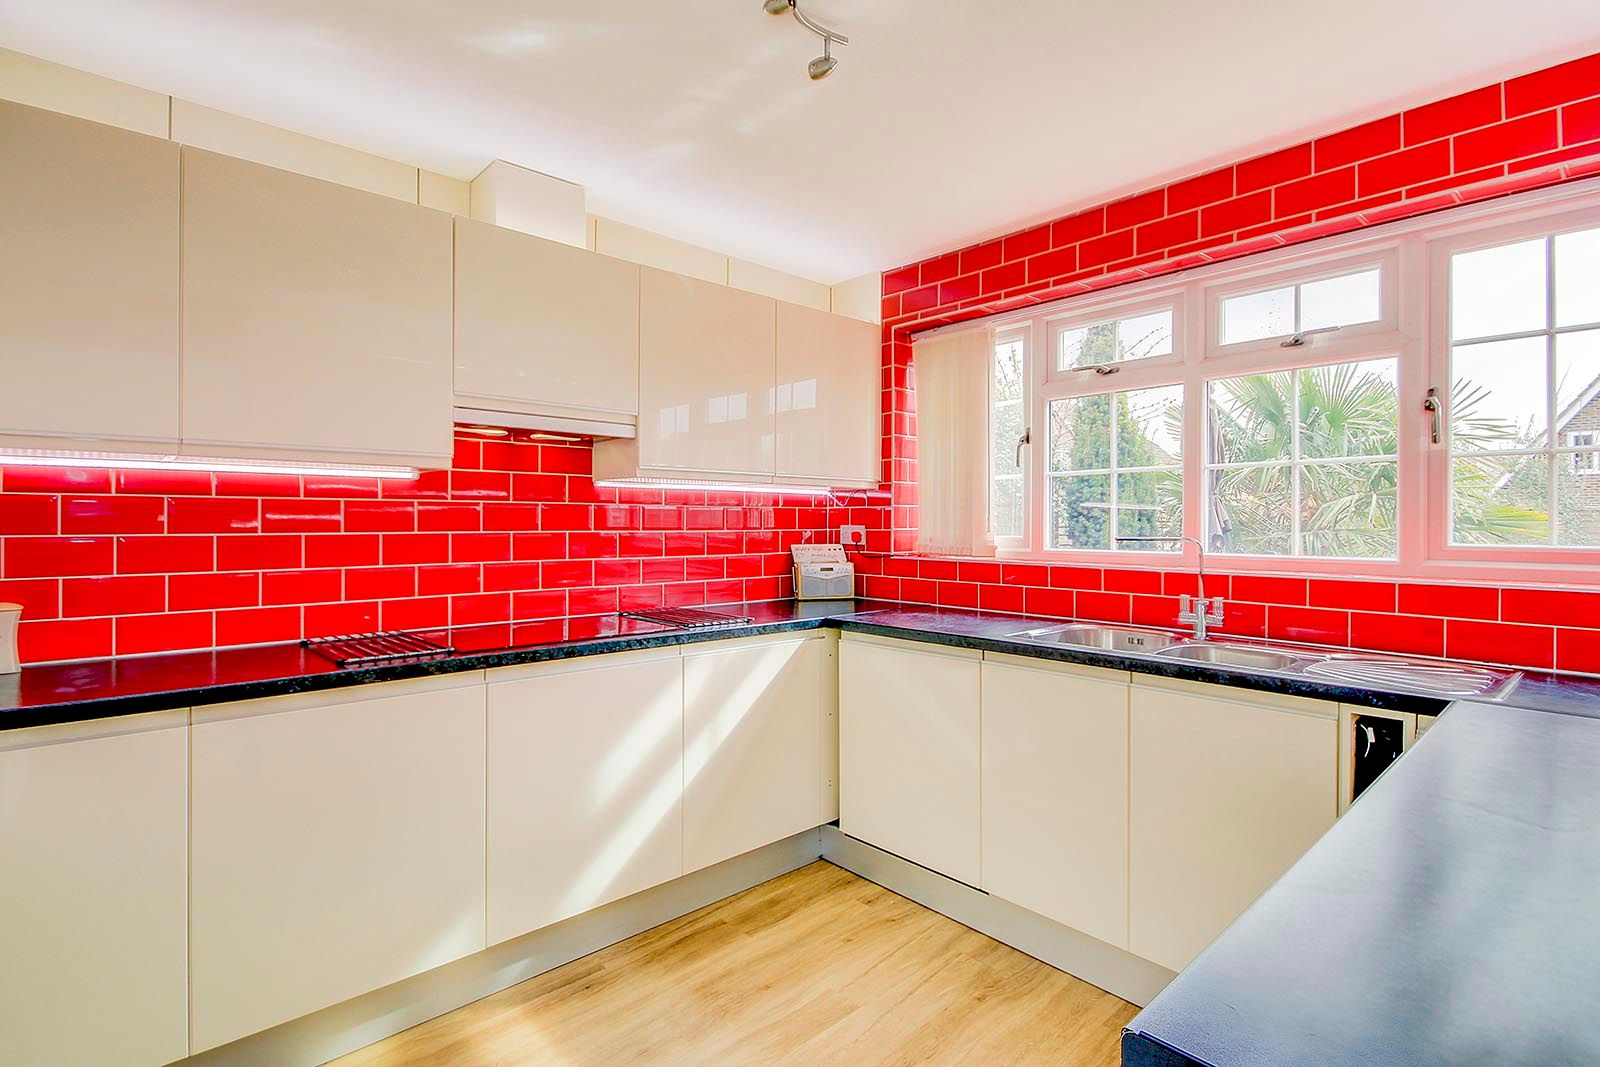 3 bed house for sale in Woodlands Close (COMP AUG 19) 5